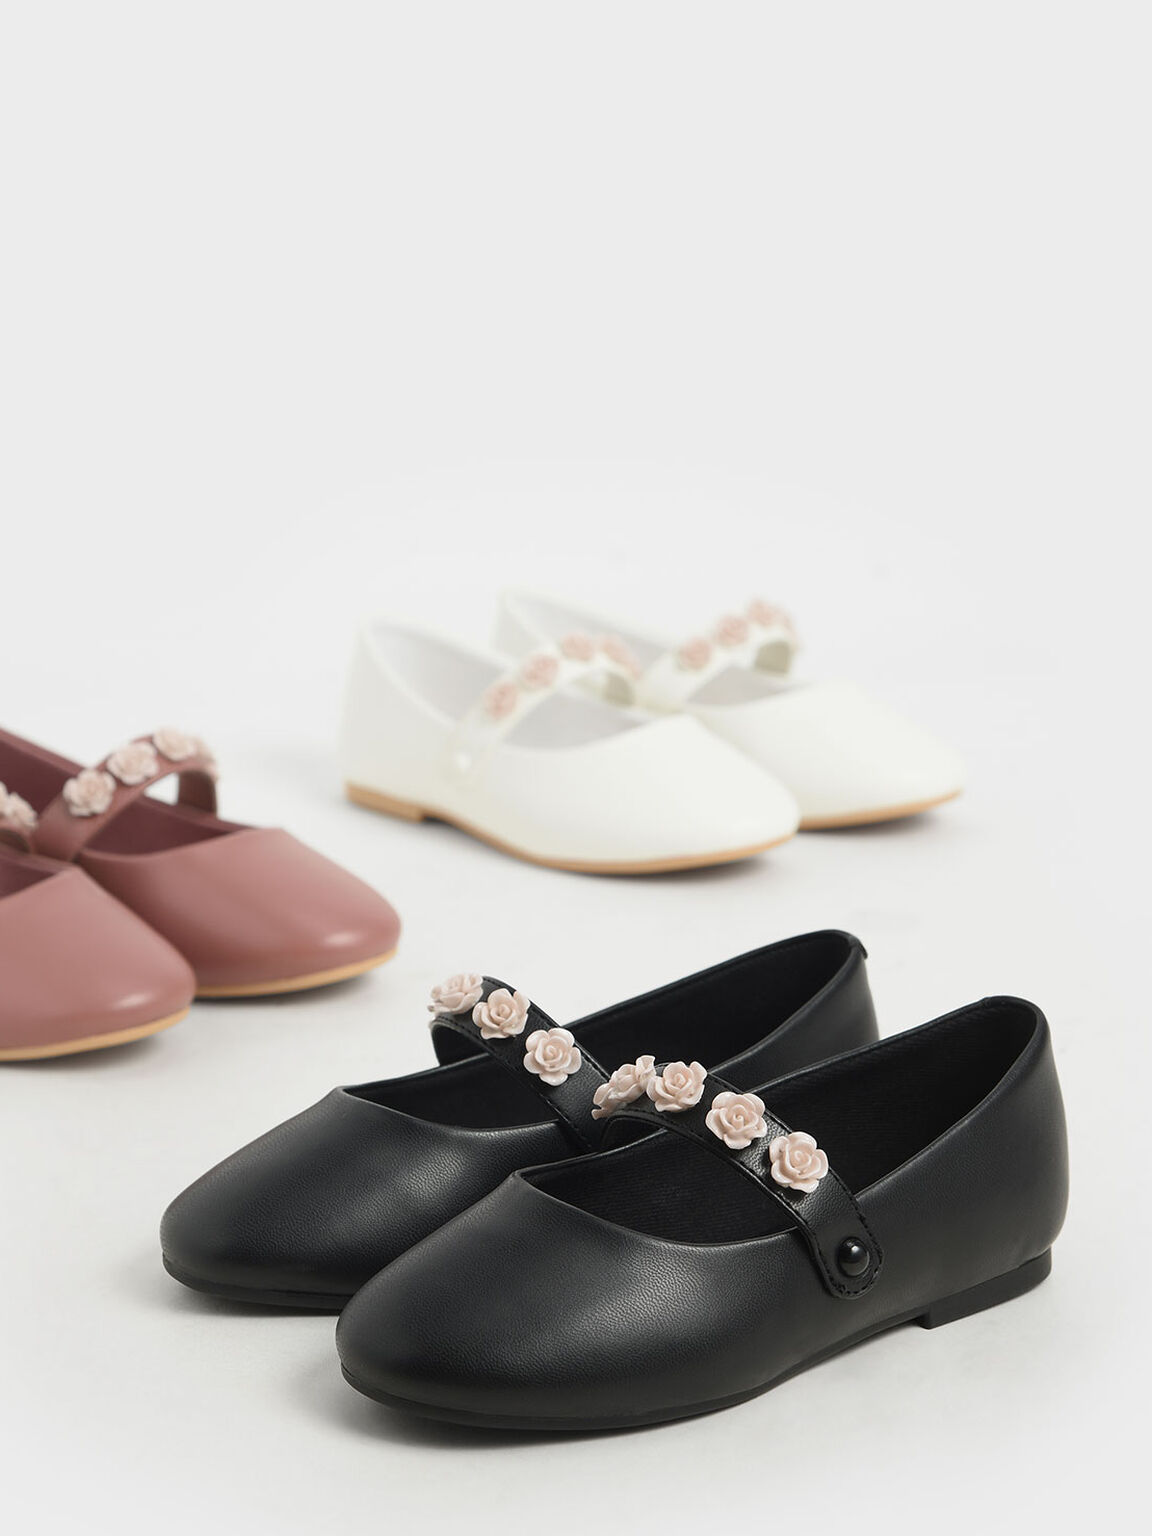 Girls' Flower-Embellished Mary Janes, Pink, hi-res